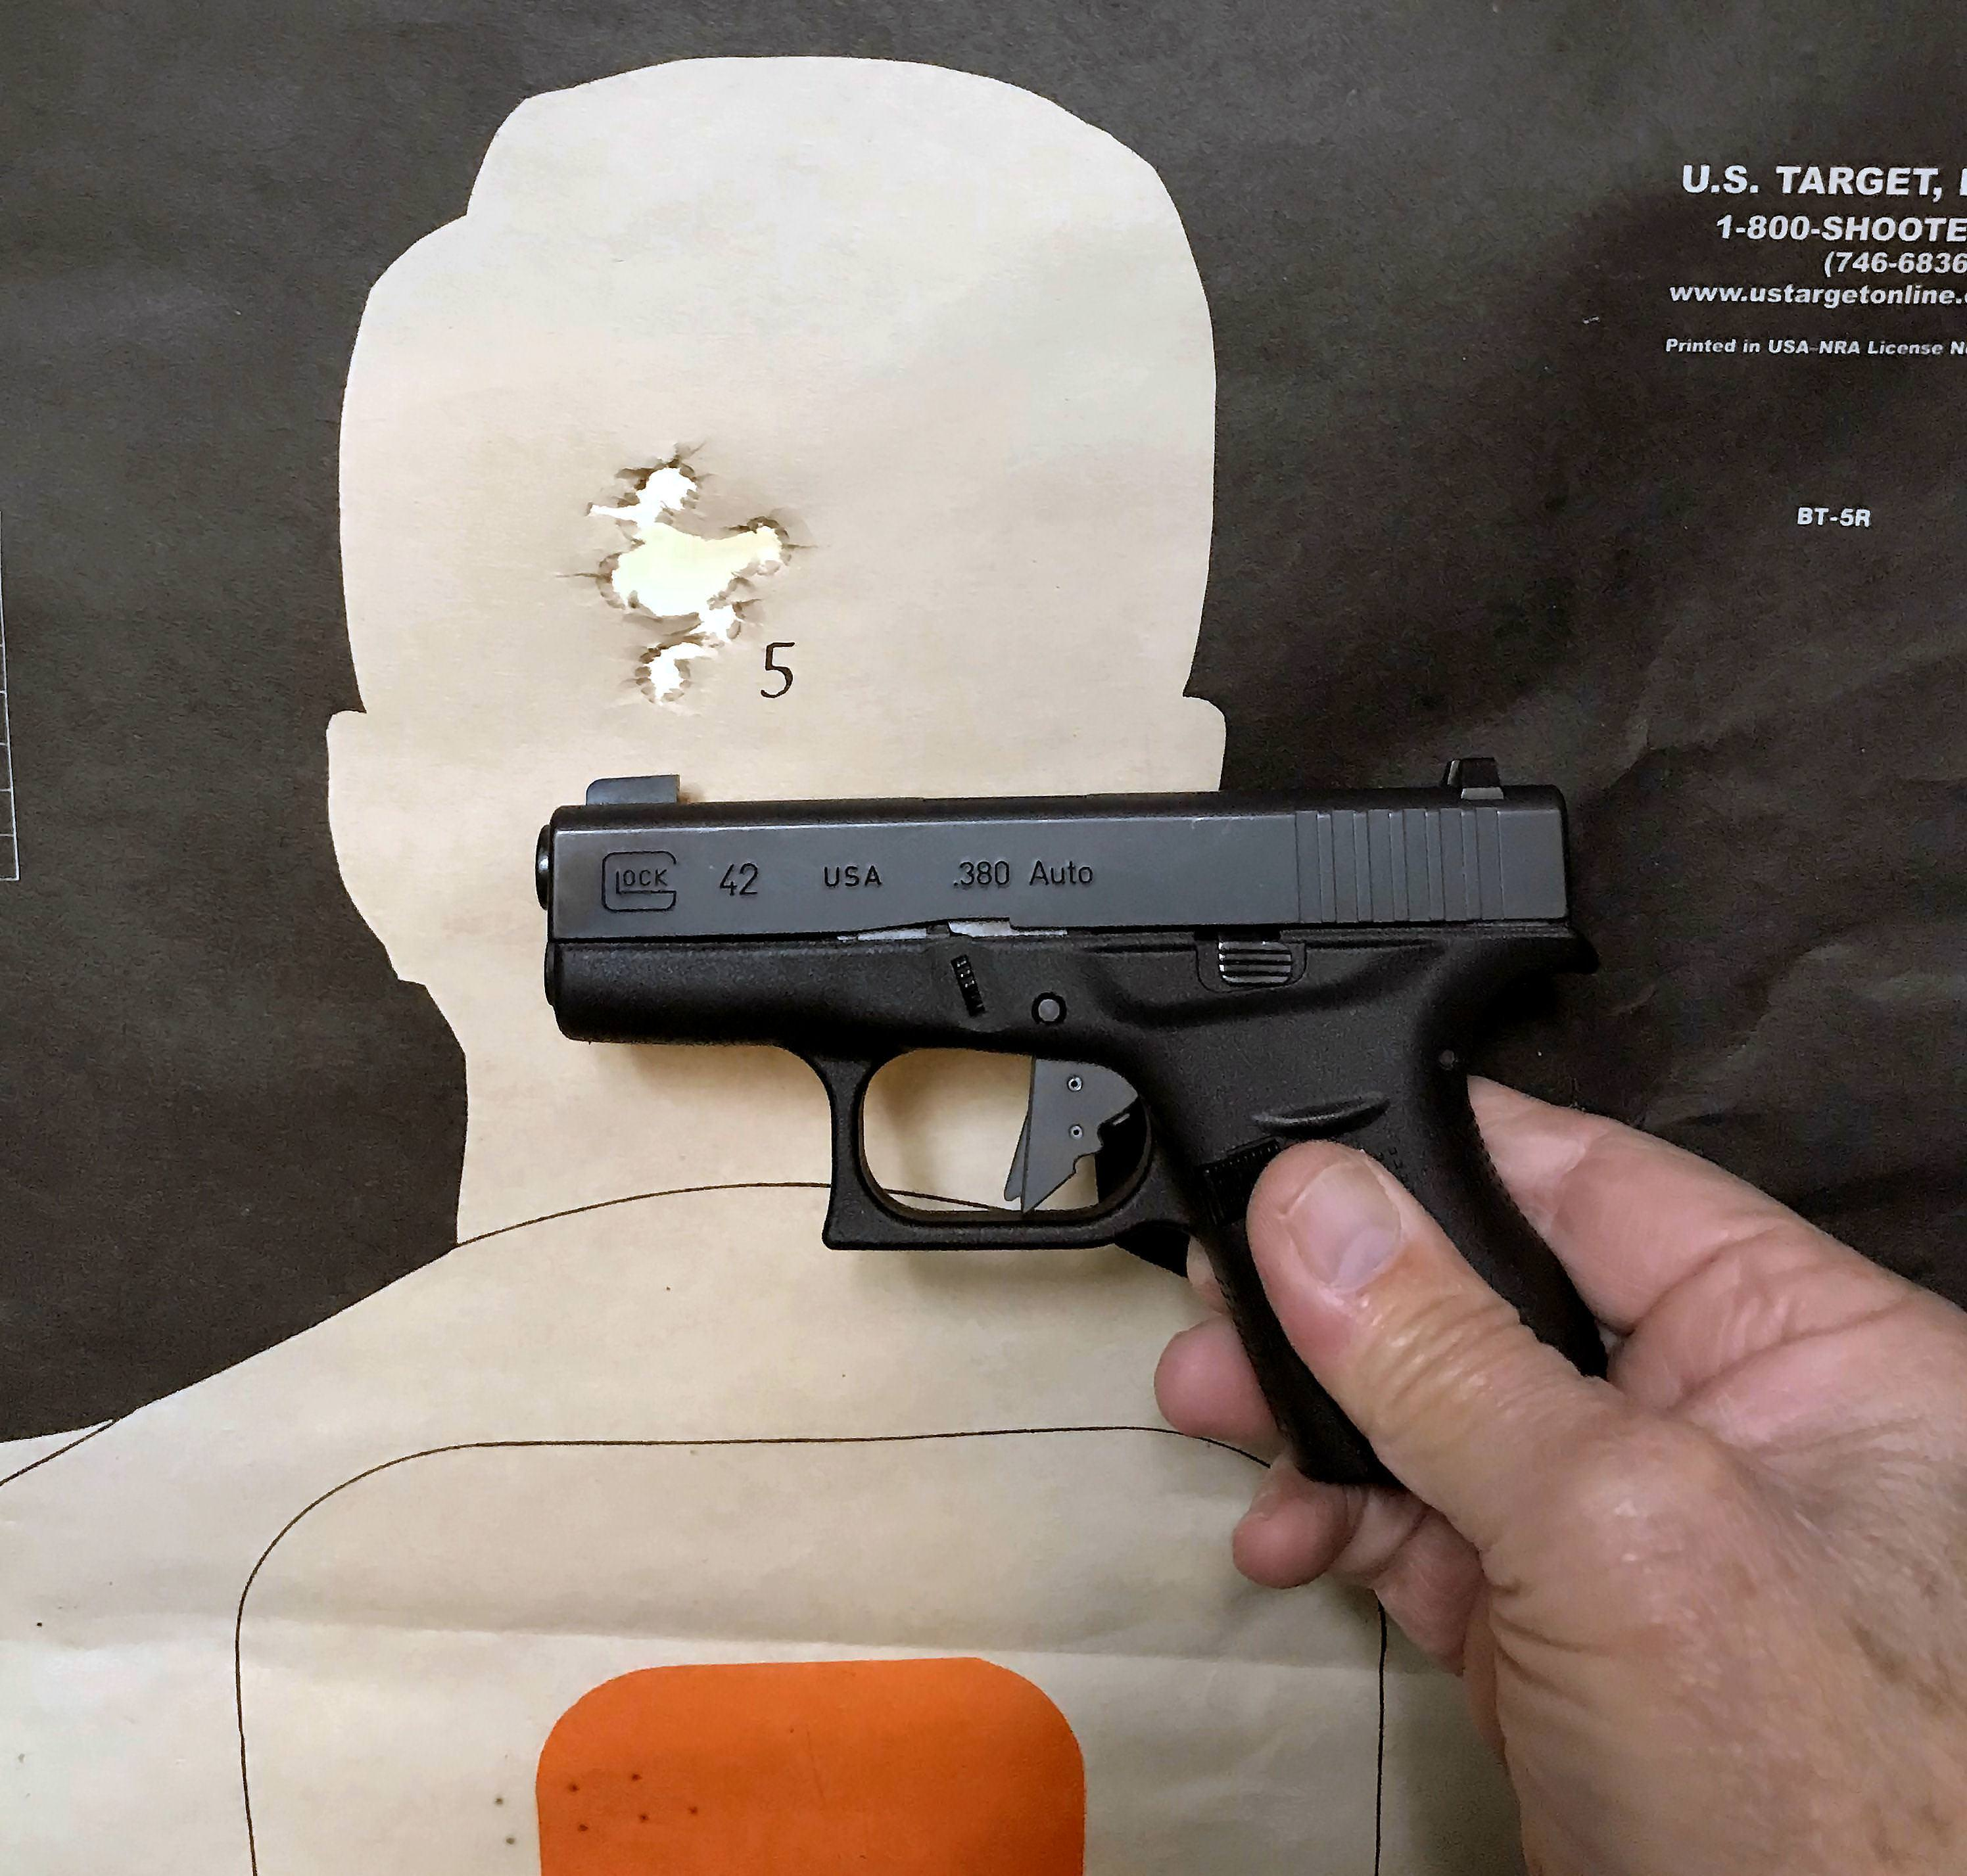 Looking for a softer shooting 380 subcompact-lepzulh.jpg